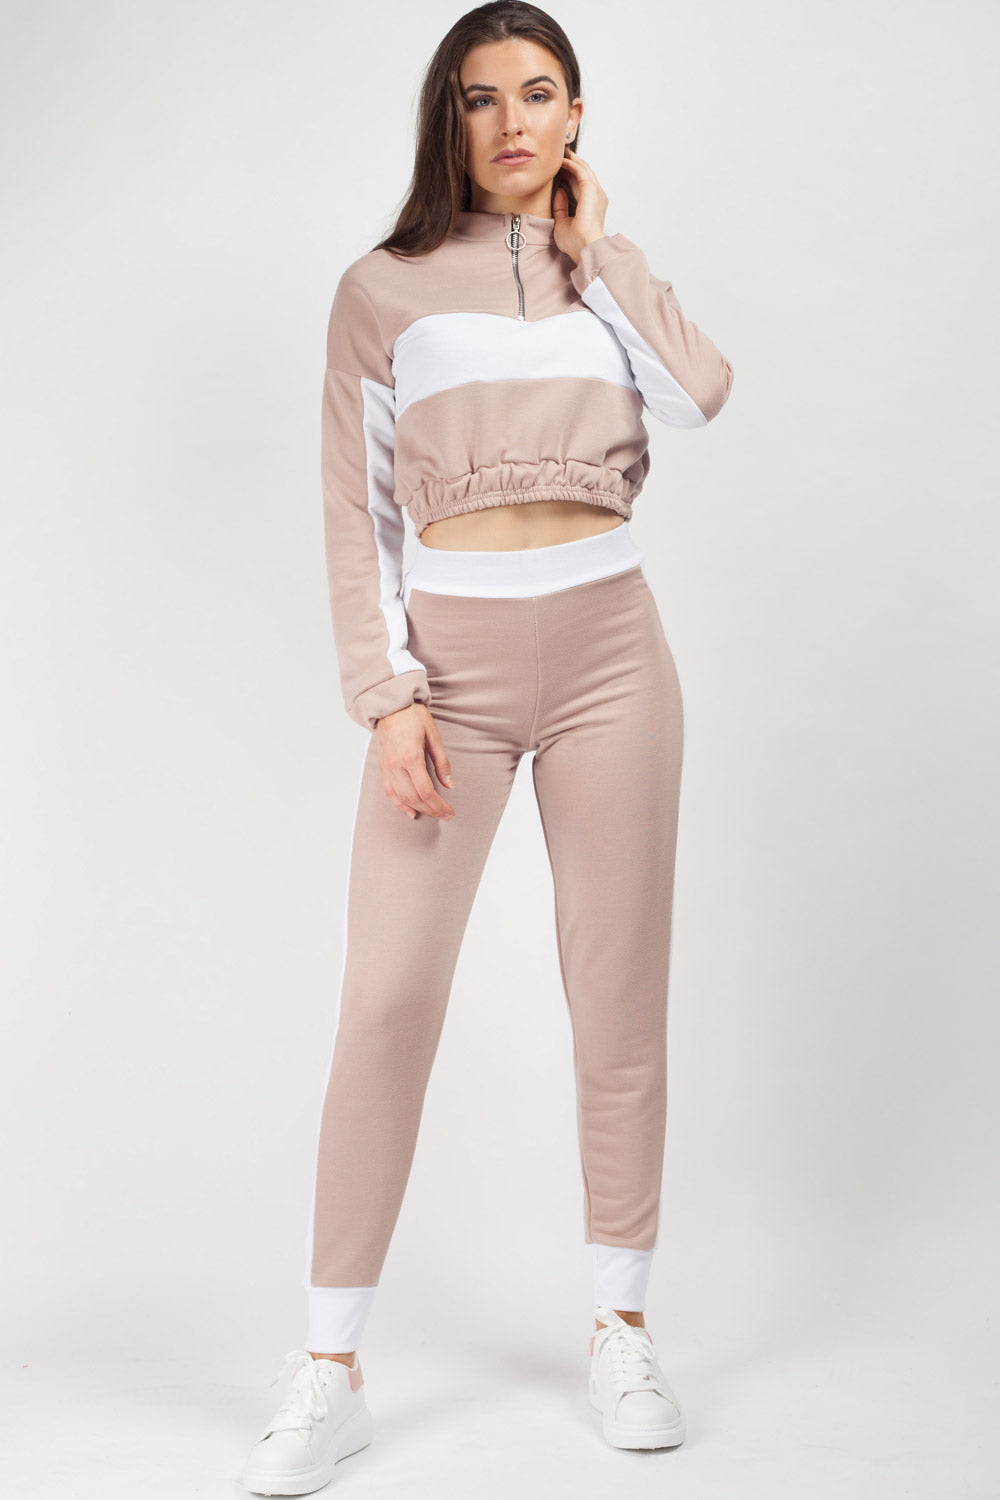 zip front tracksuit top and joggers set womens